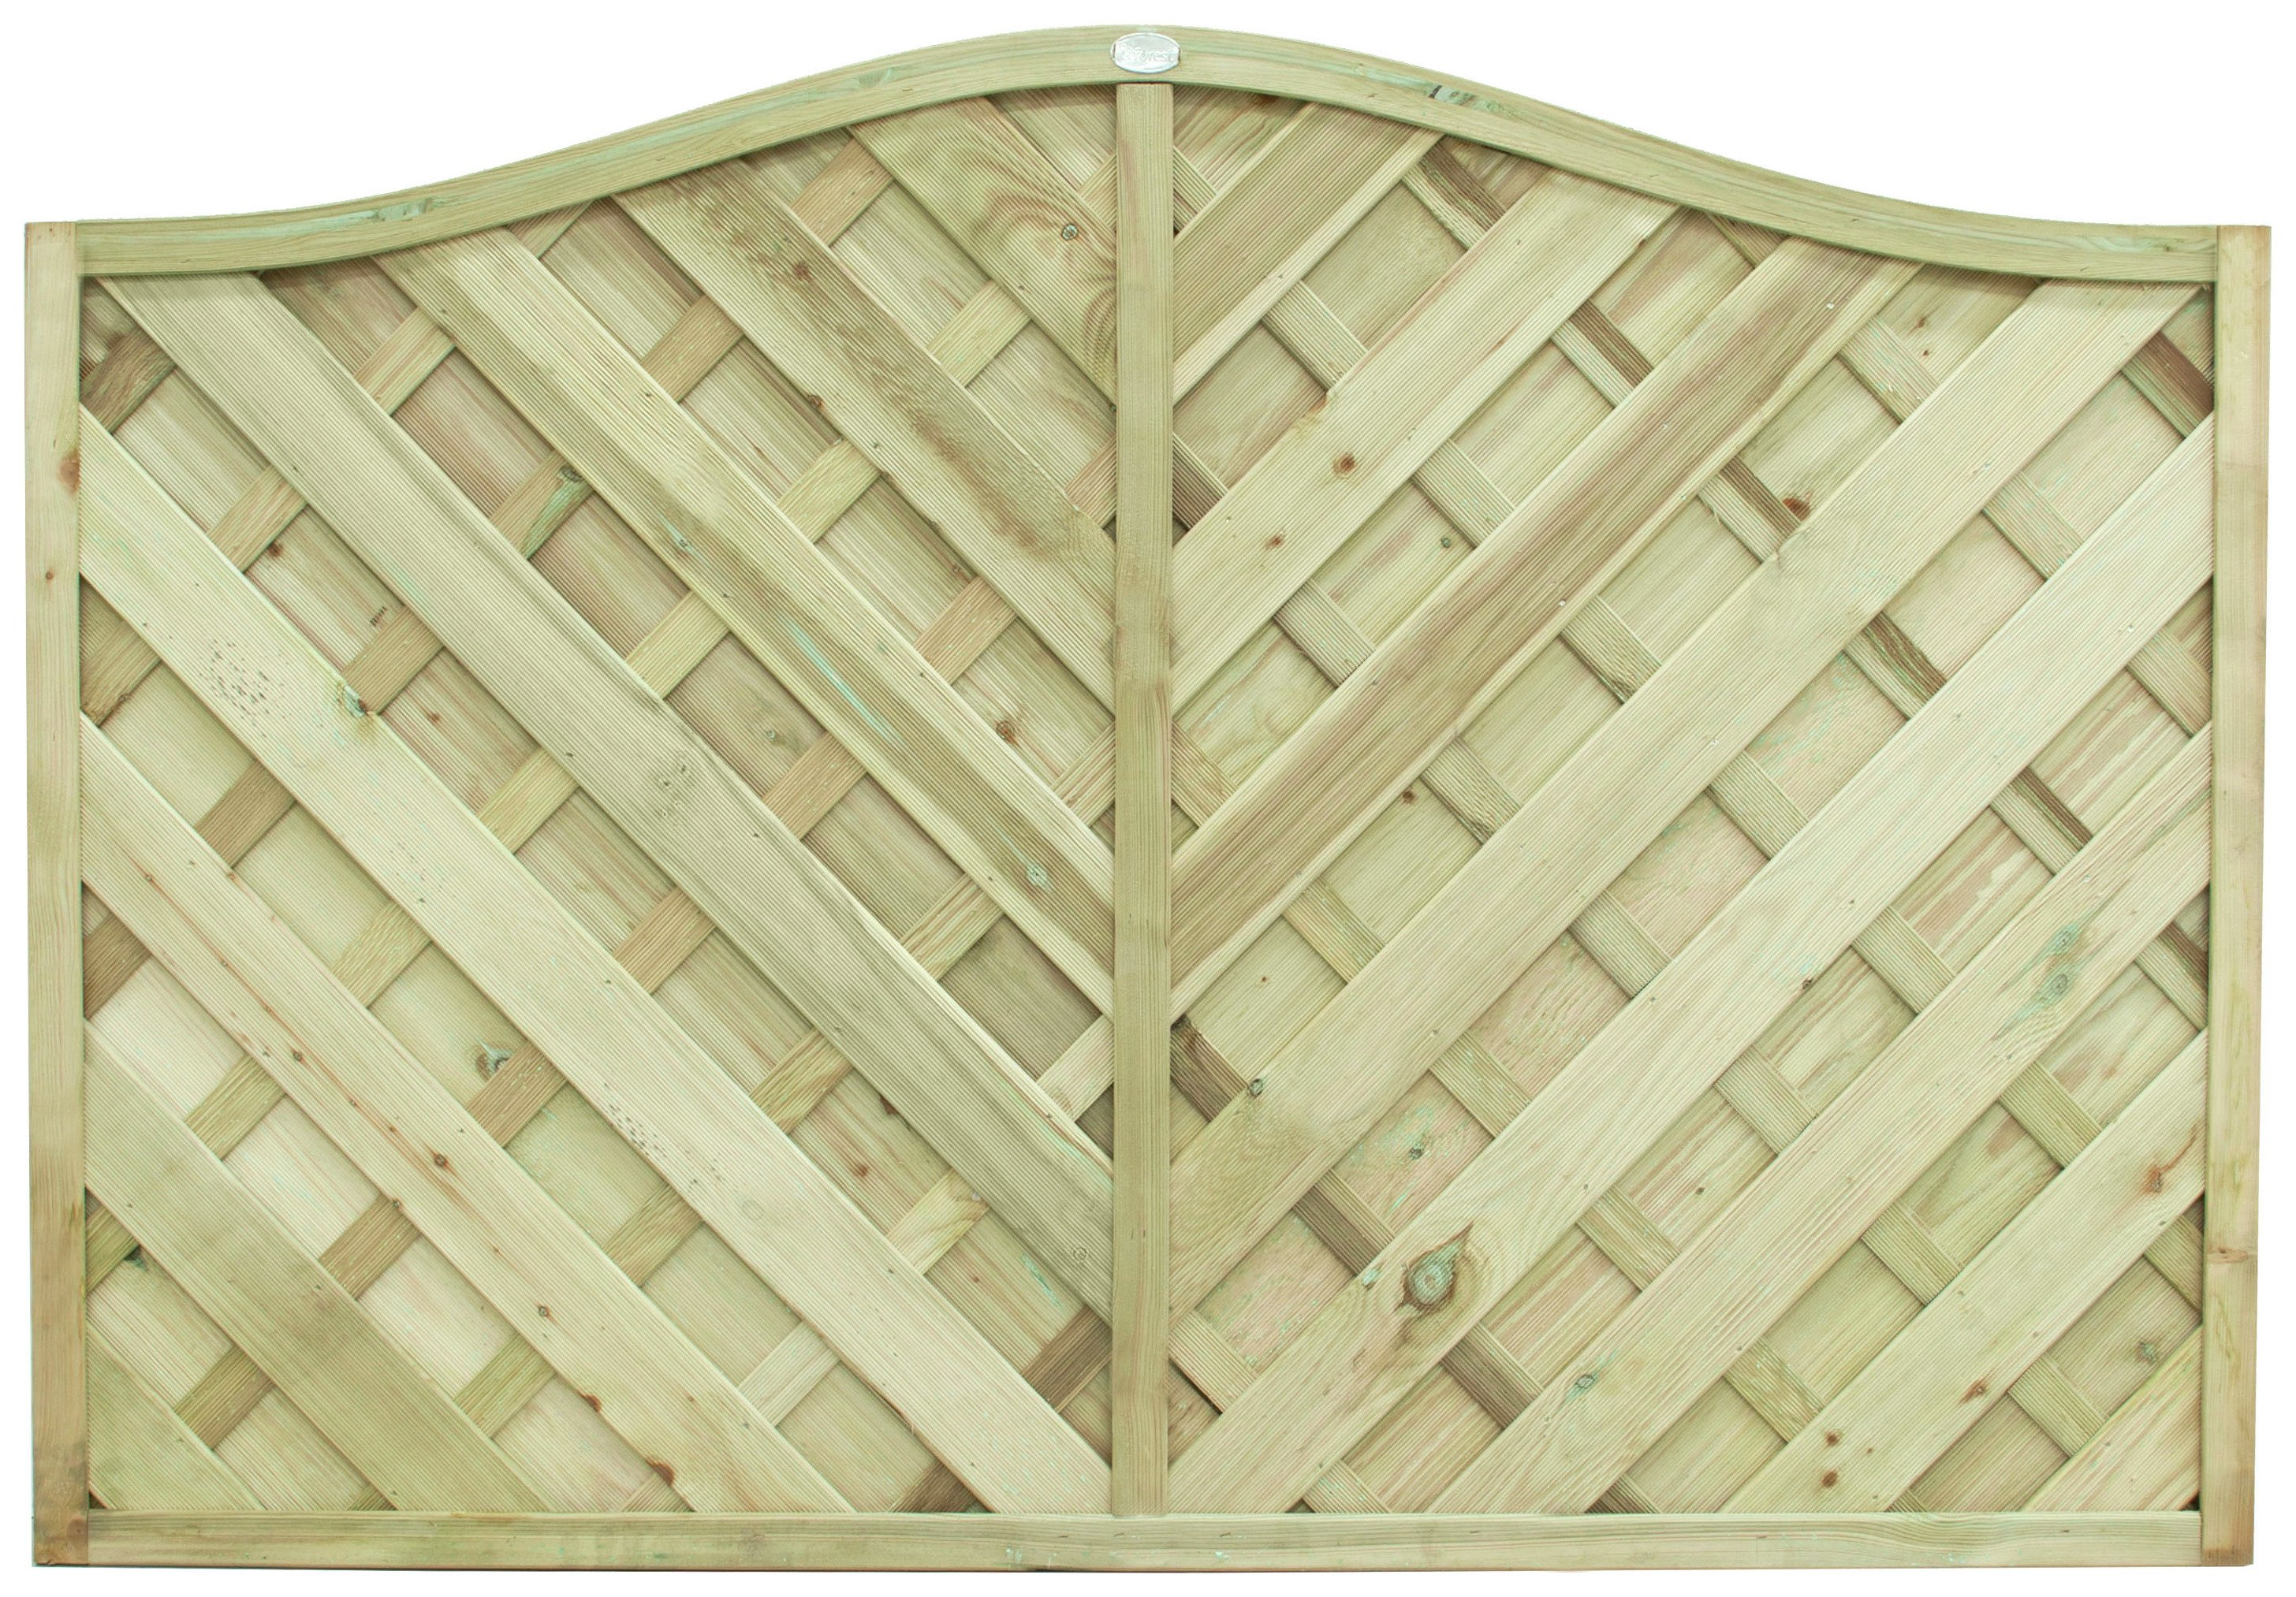 Forest 1.2m Strasburg Fence Panel - Pack of 3. lowest price